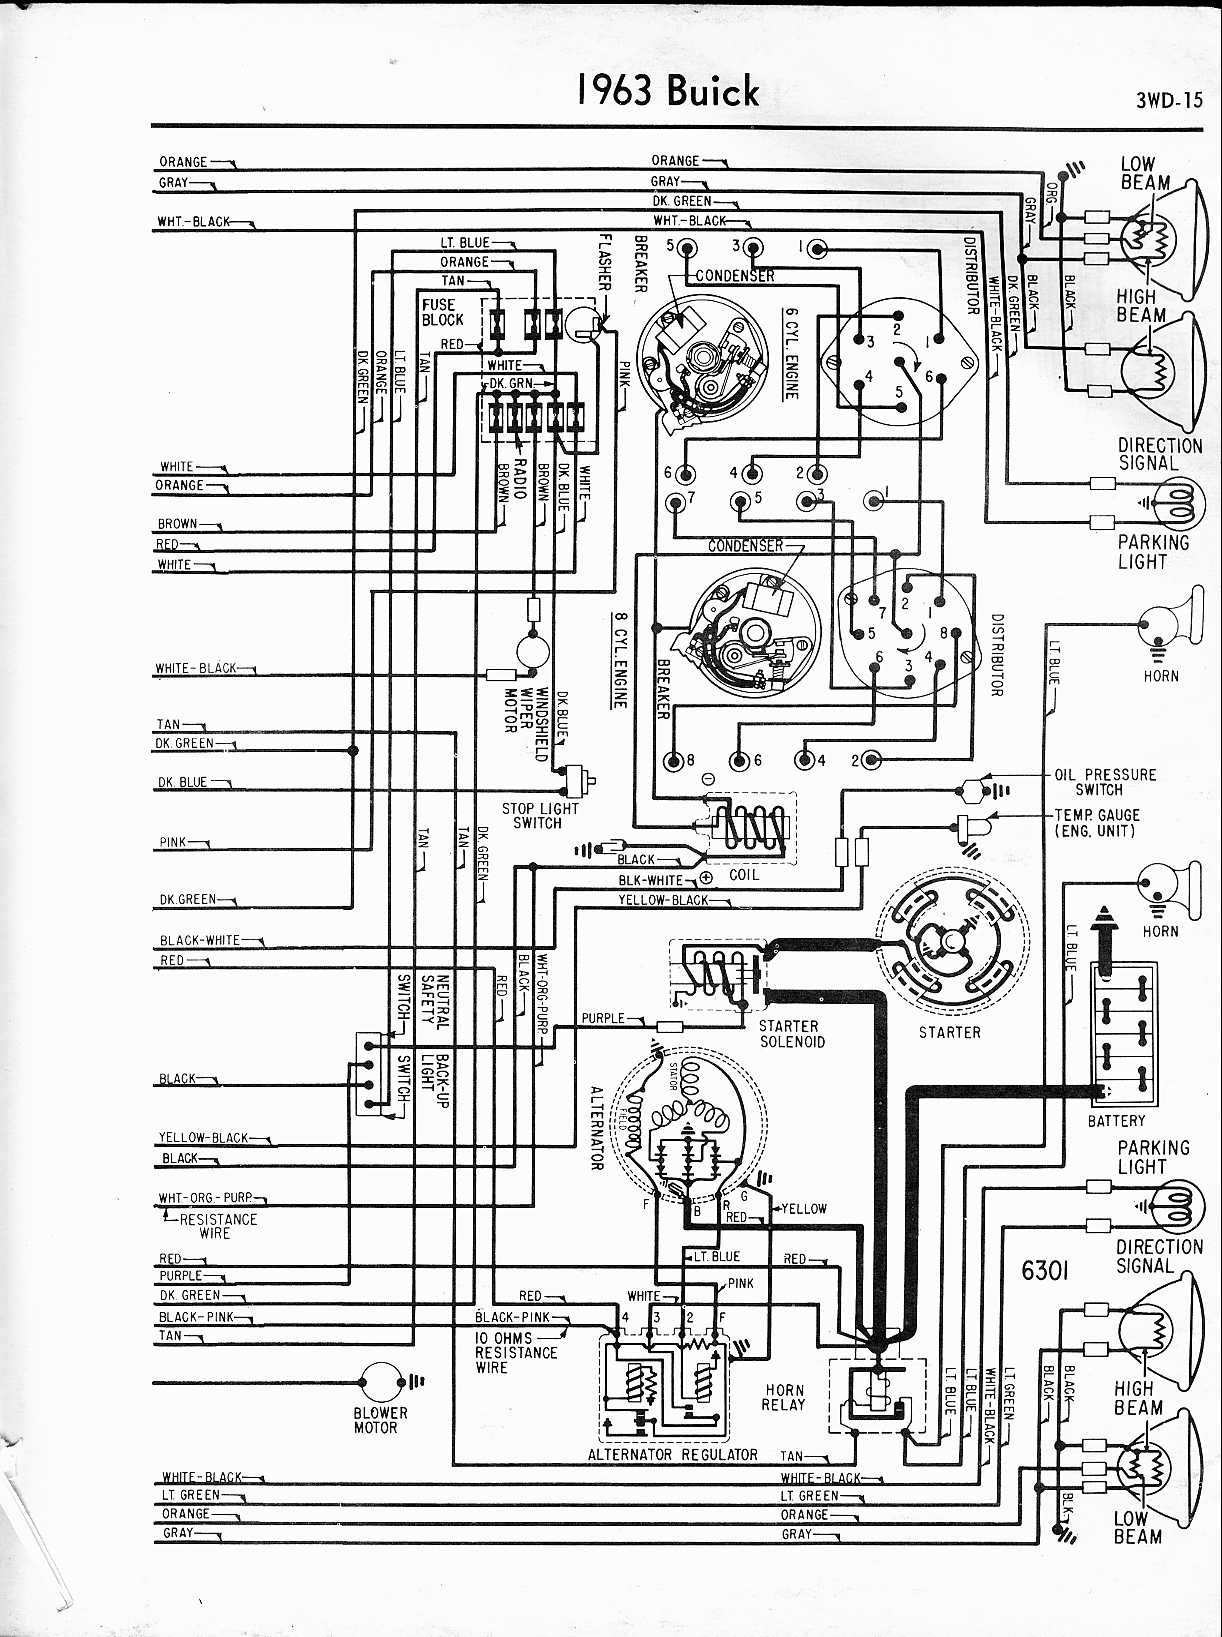 Buick Wiring Diagrams 1957 1965 Datsun 620 Diagram For Distributor 1963 Special Skylark Right Half